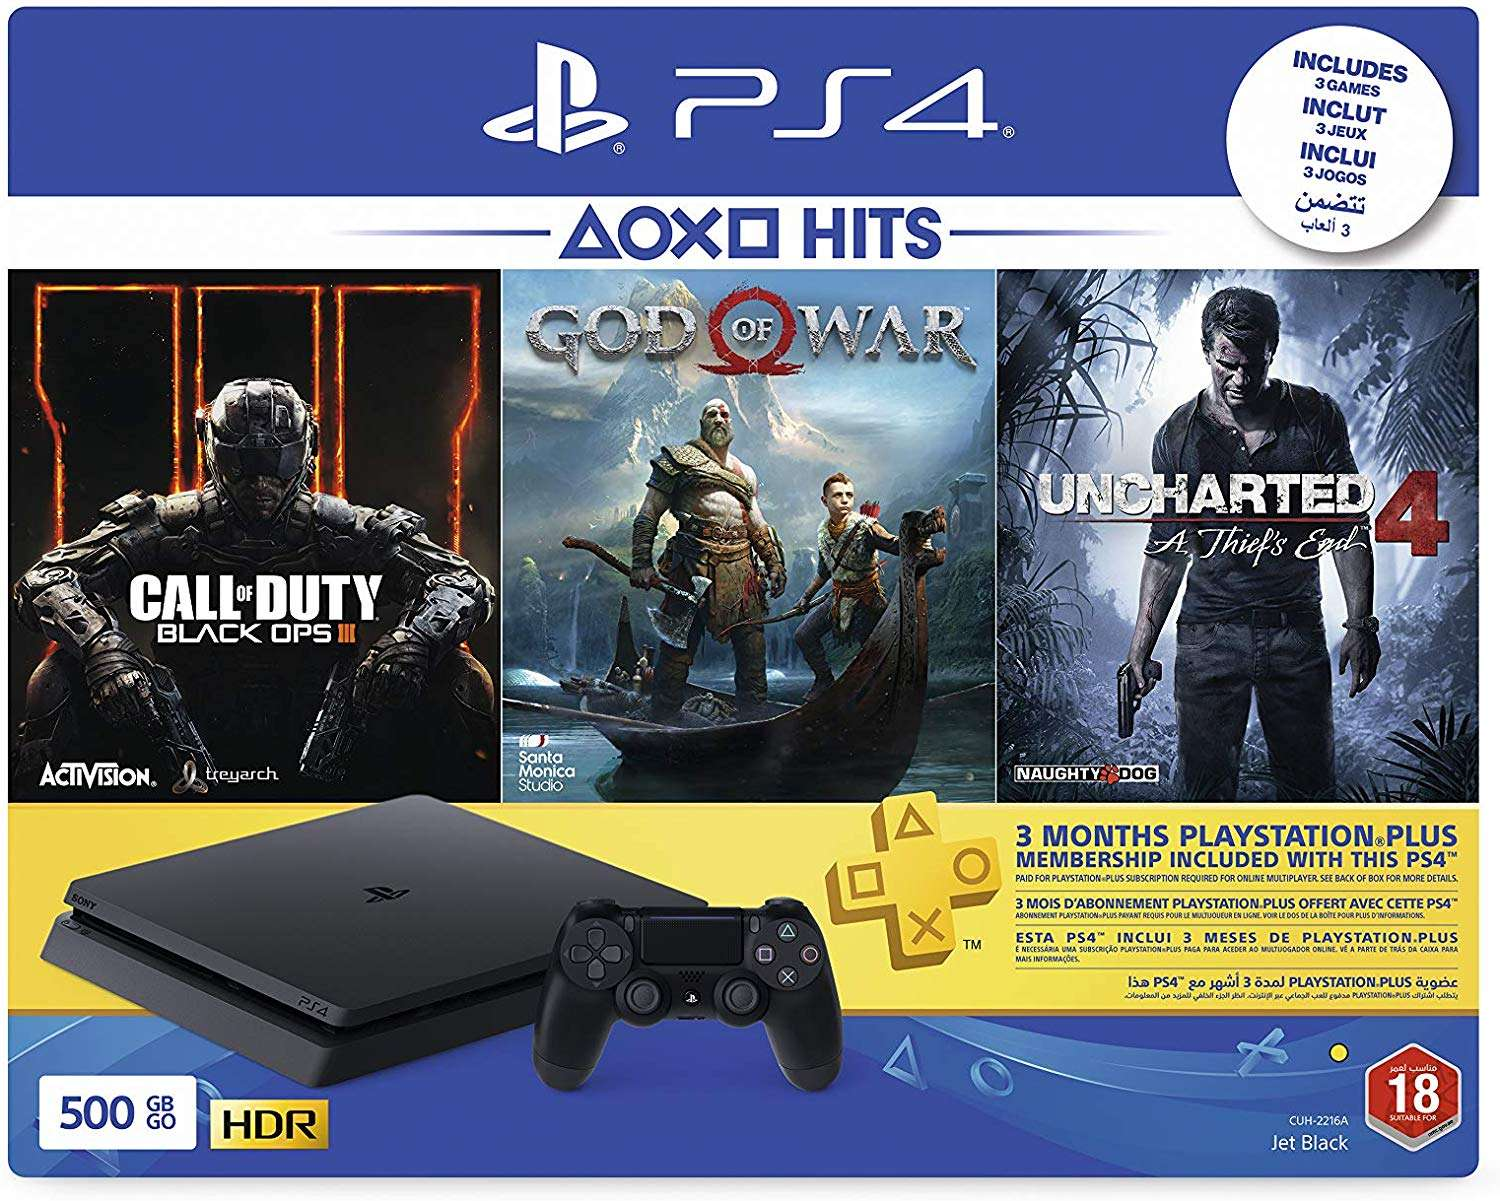 Sony PlayStation 4 Slim 500GB Console (Black) with 3 Month PSN Subscription and 3 Games (Call Of Duty: Black Ops 3, God Of War & Uncharted 4) Bundle